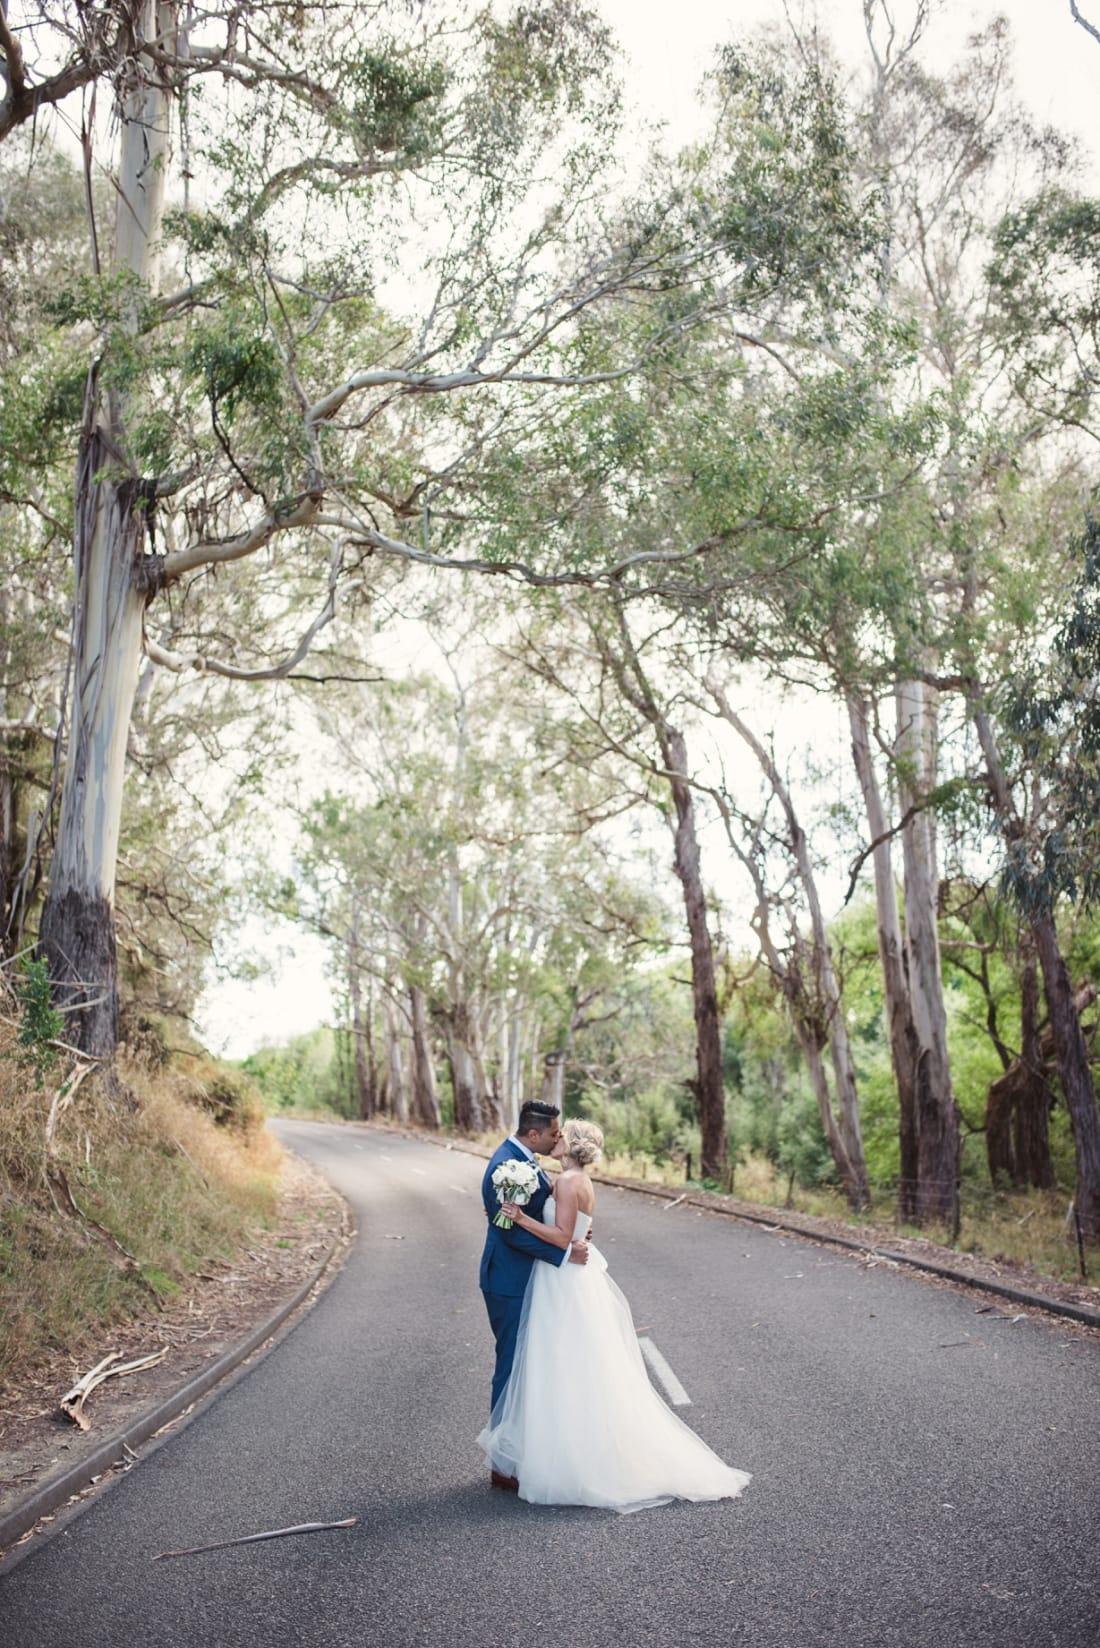 Jolene & Joseph - Black Barn Riverside Wedding, Hawkes Bay | www.meredithlord.com